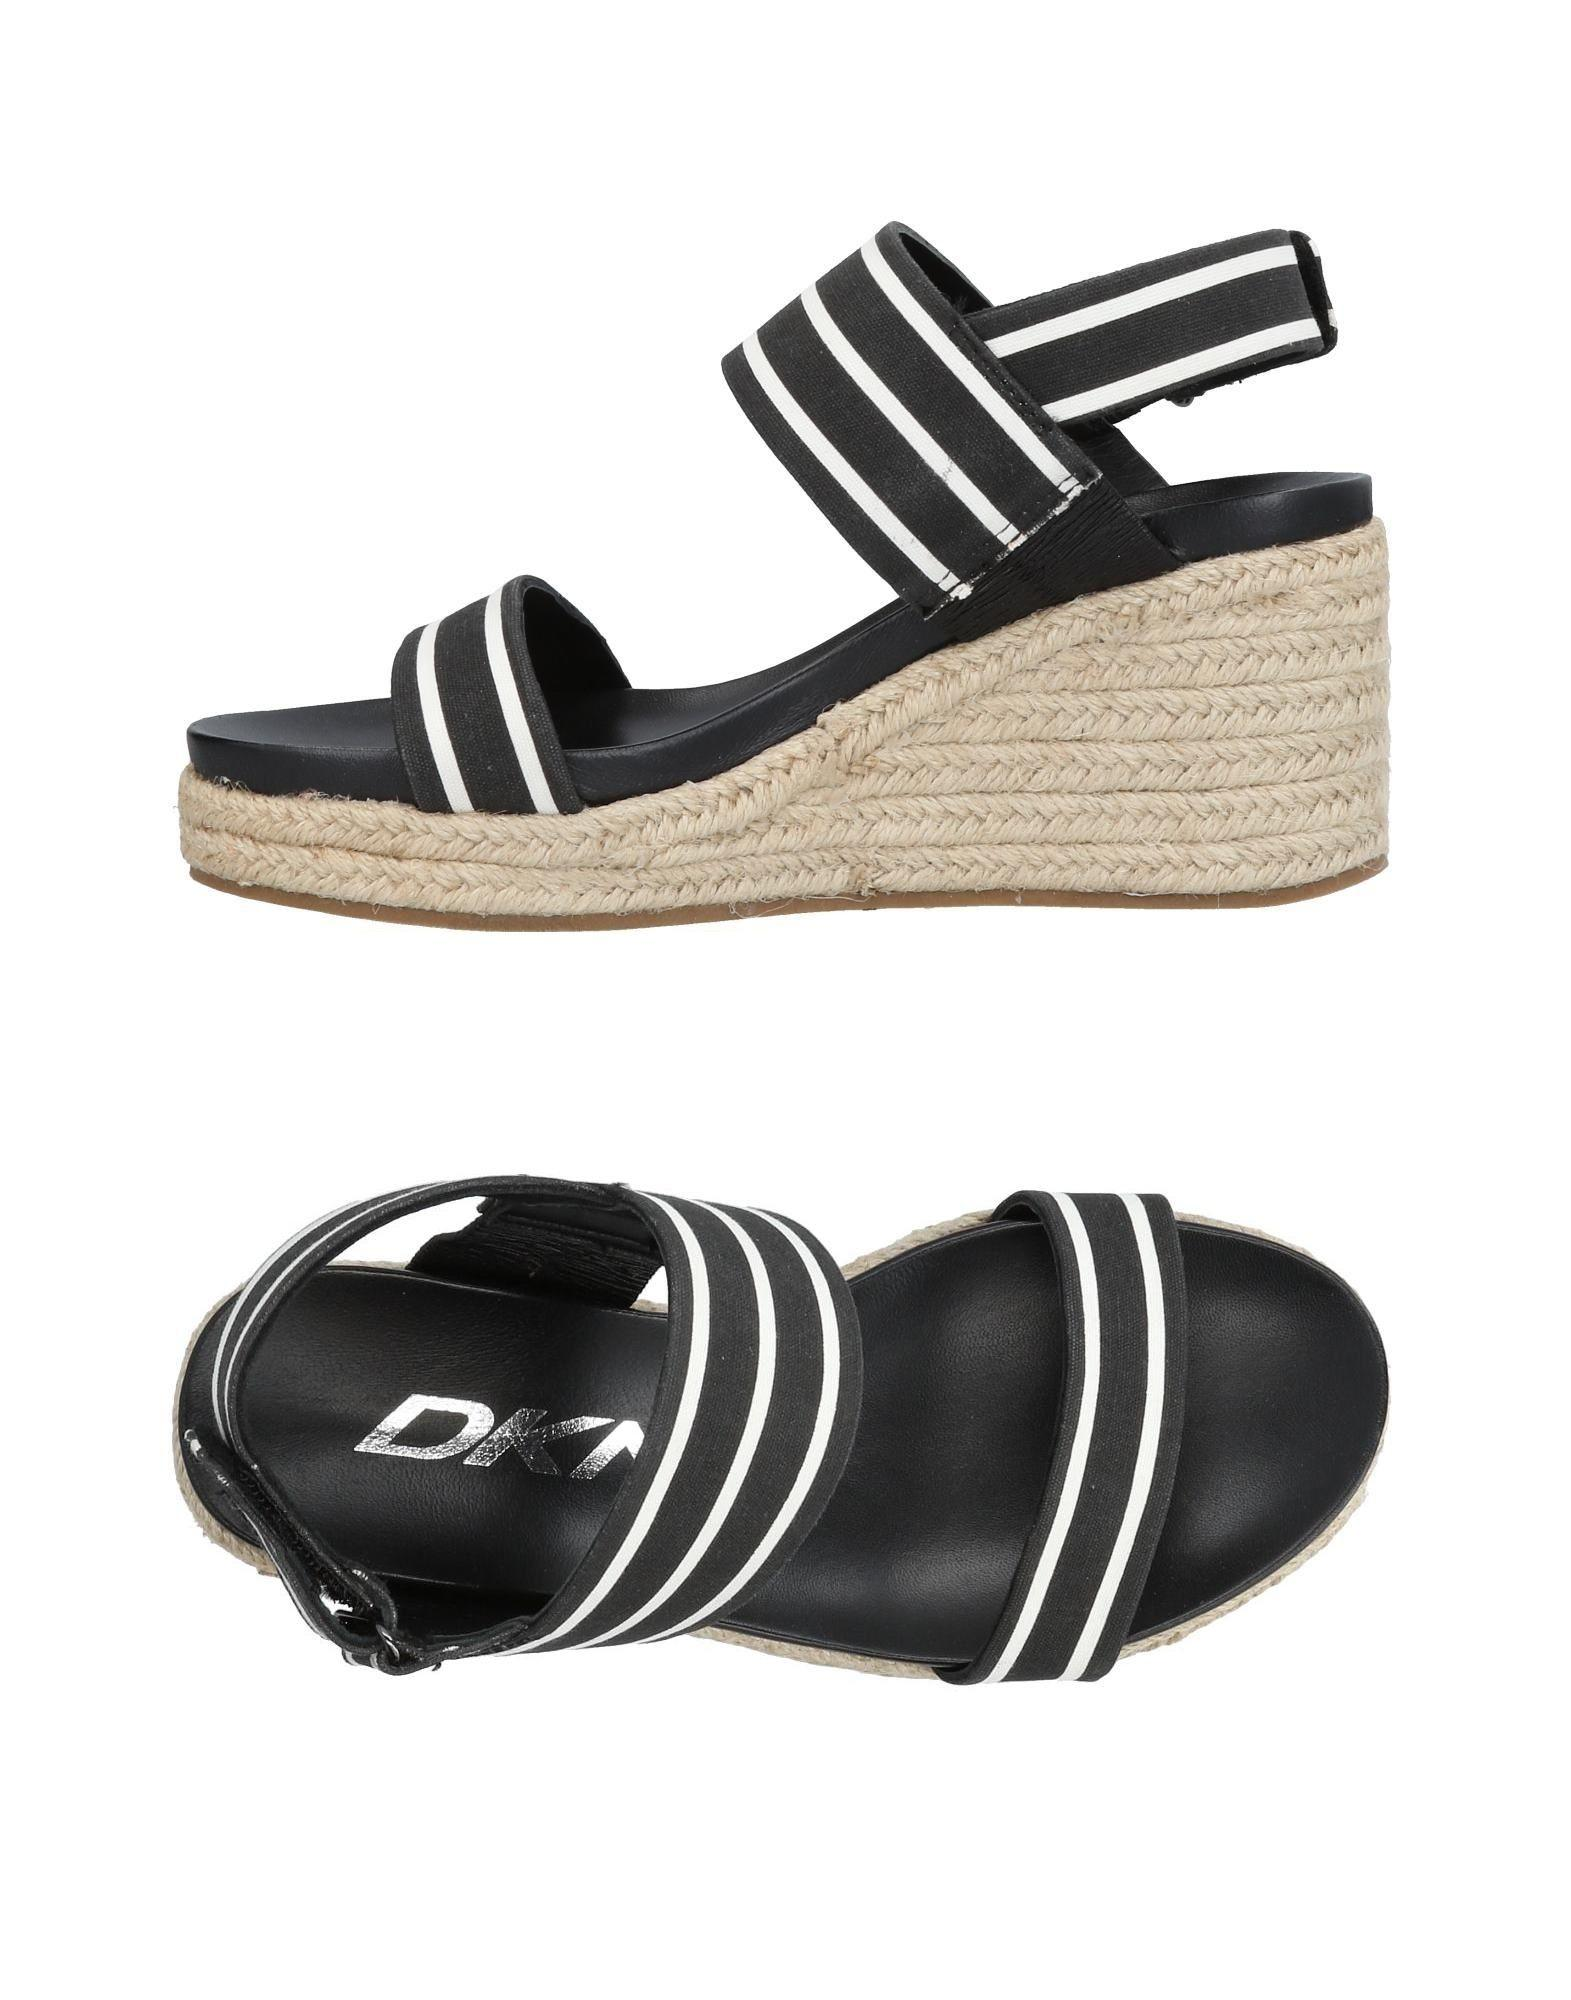 Dkny Sandals In Black